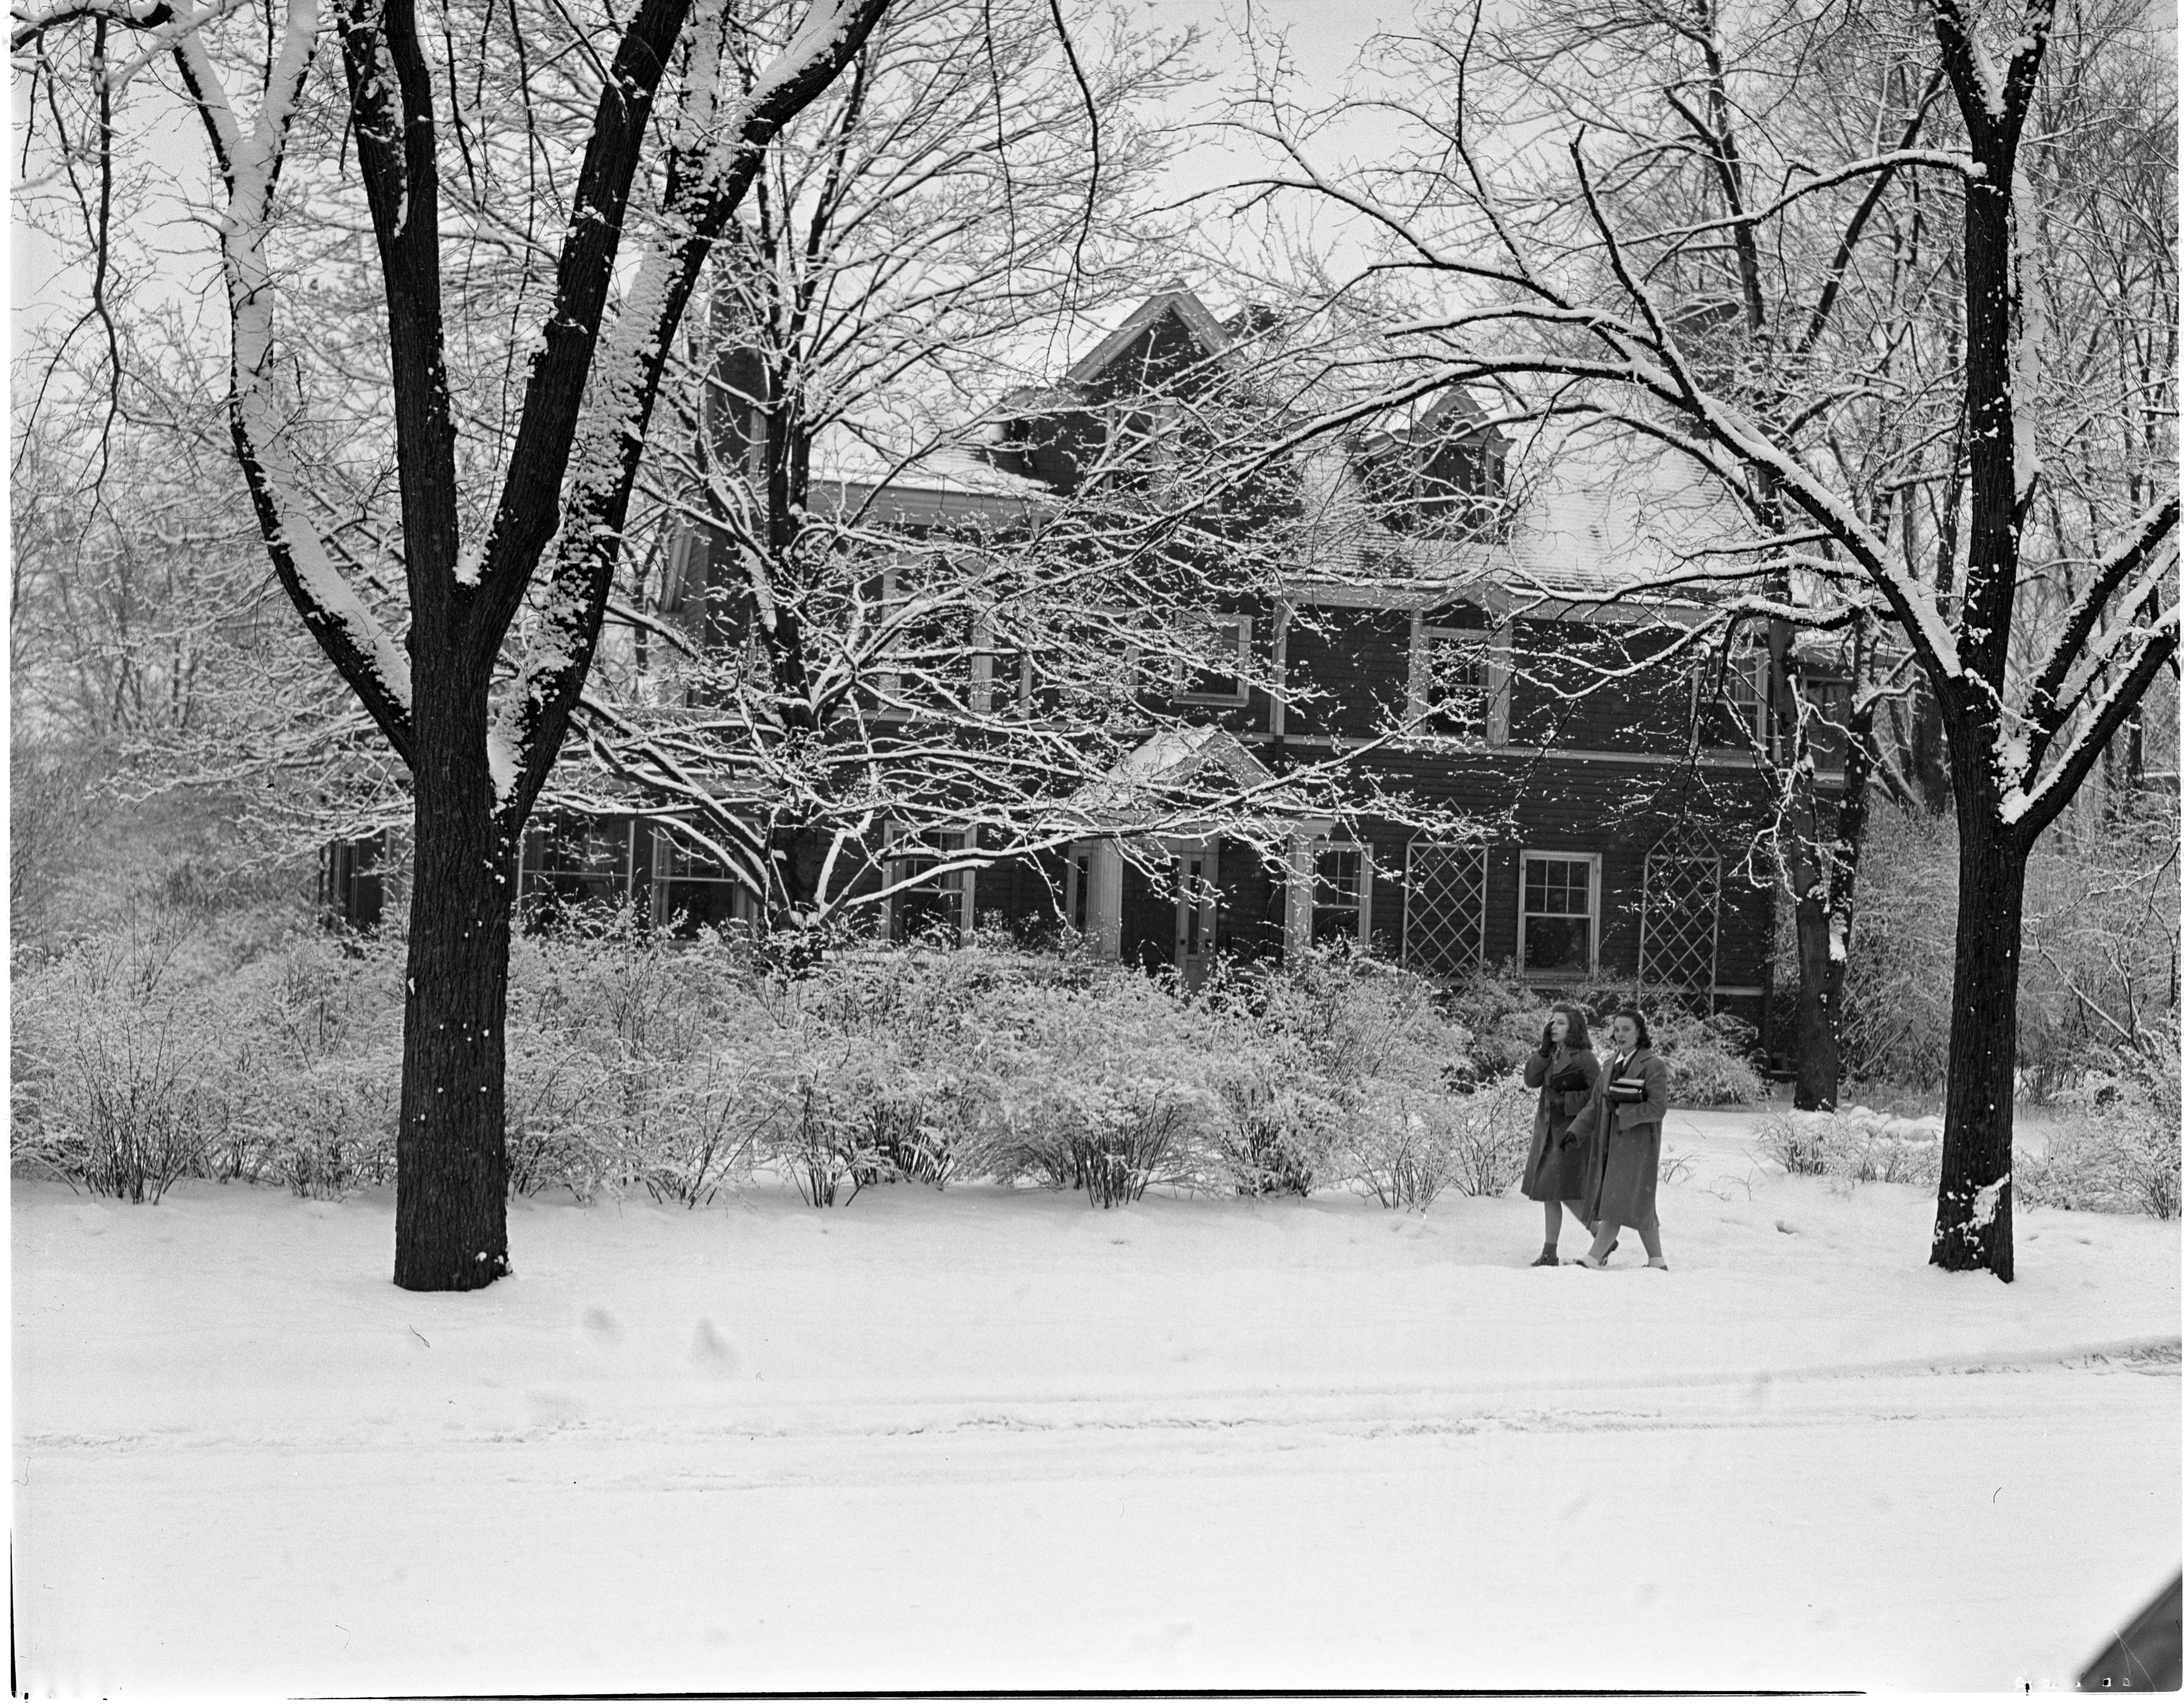 Snow Blankets The Home Of Harold Gray At 1416 Hill Street, February 1940 image